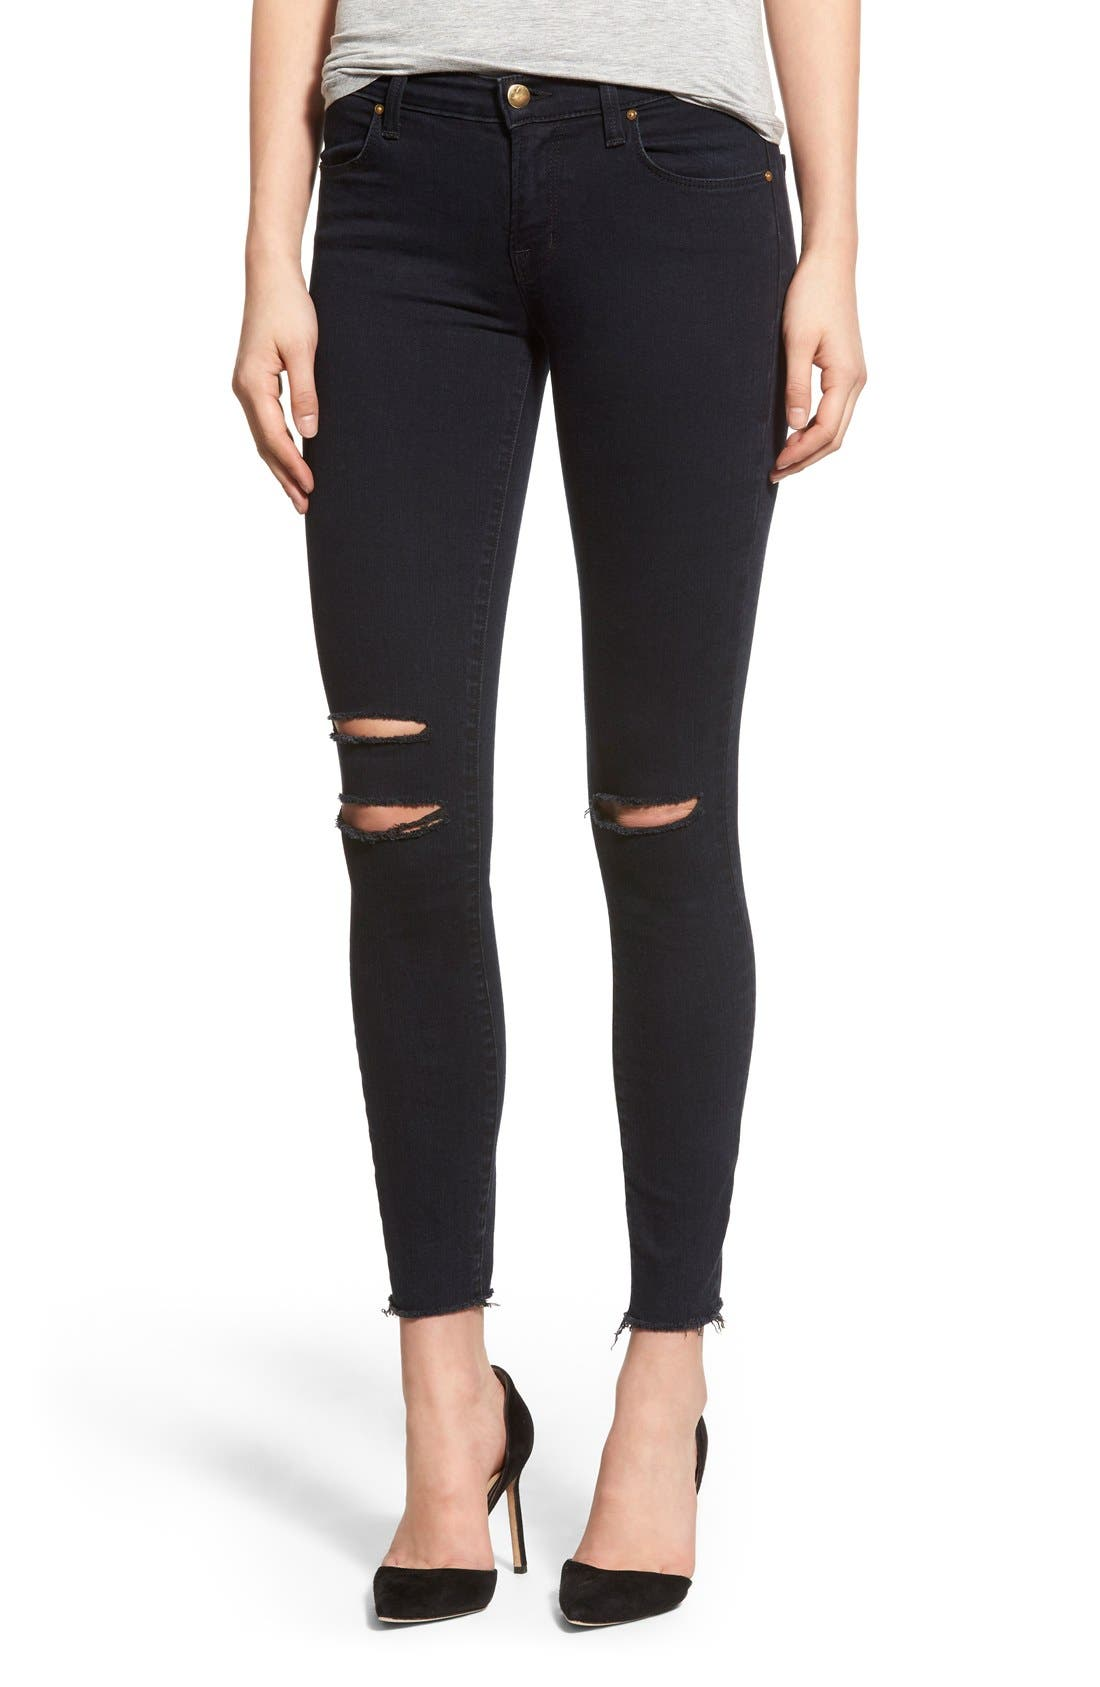 J BRAND Destroyed Crop Skinny Jeans